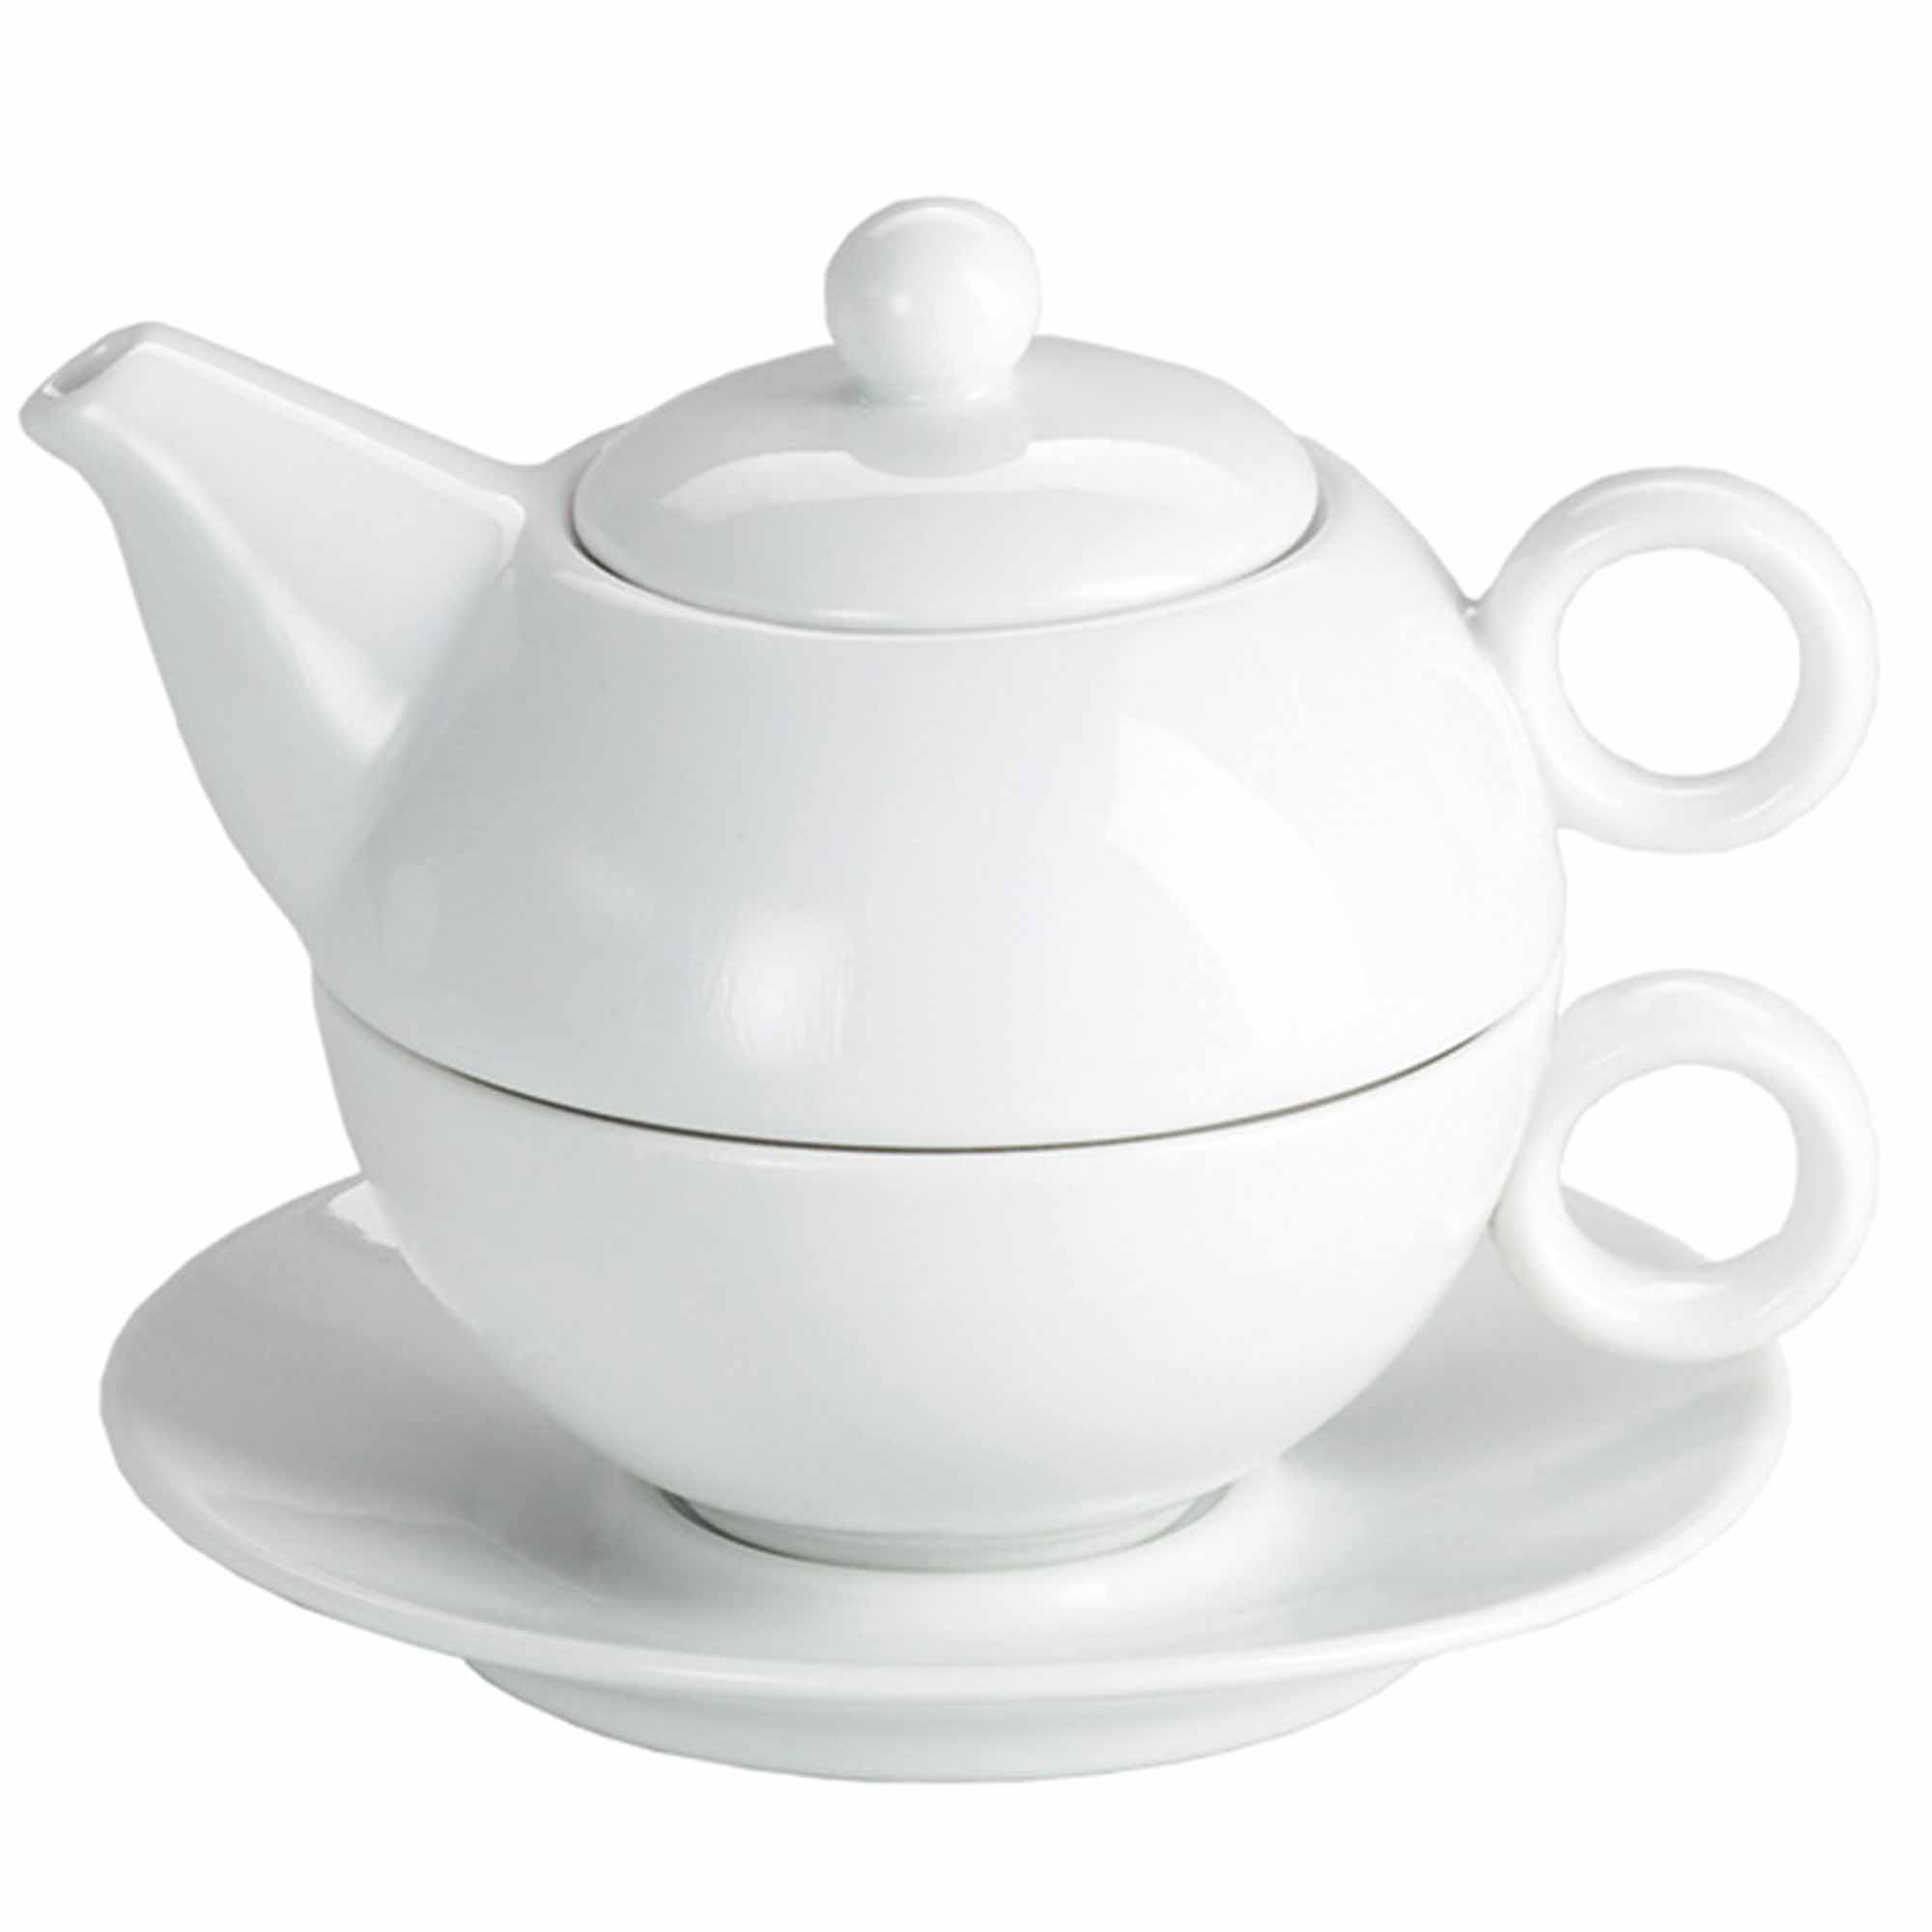 moonlight white tea for one teapot and cup set 250ml. Black Bedroom Furniture Sets. Home Design Ideas